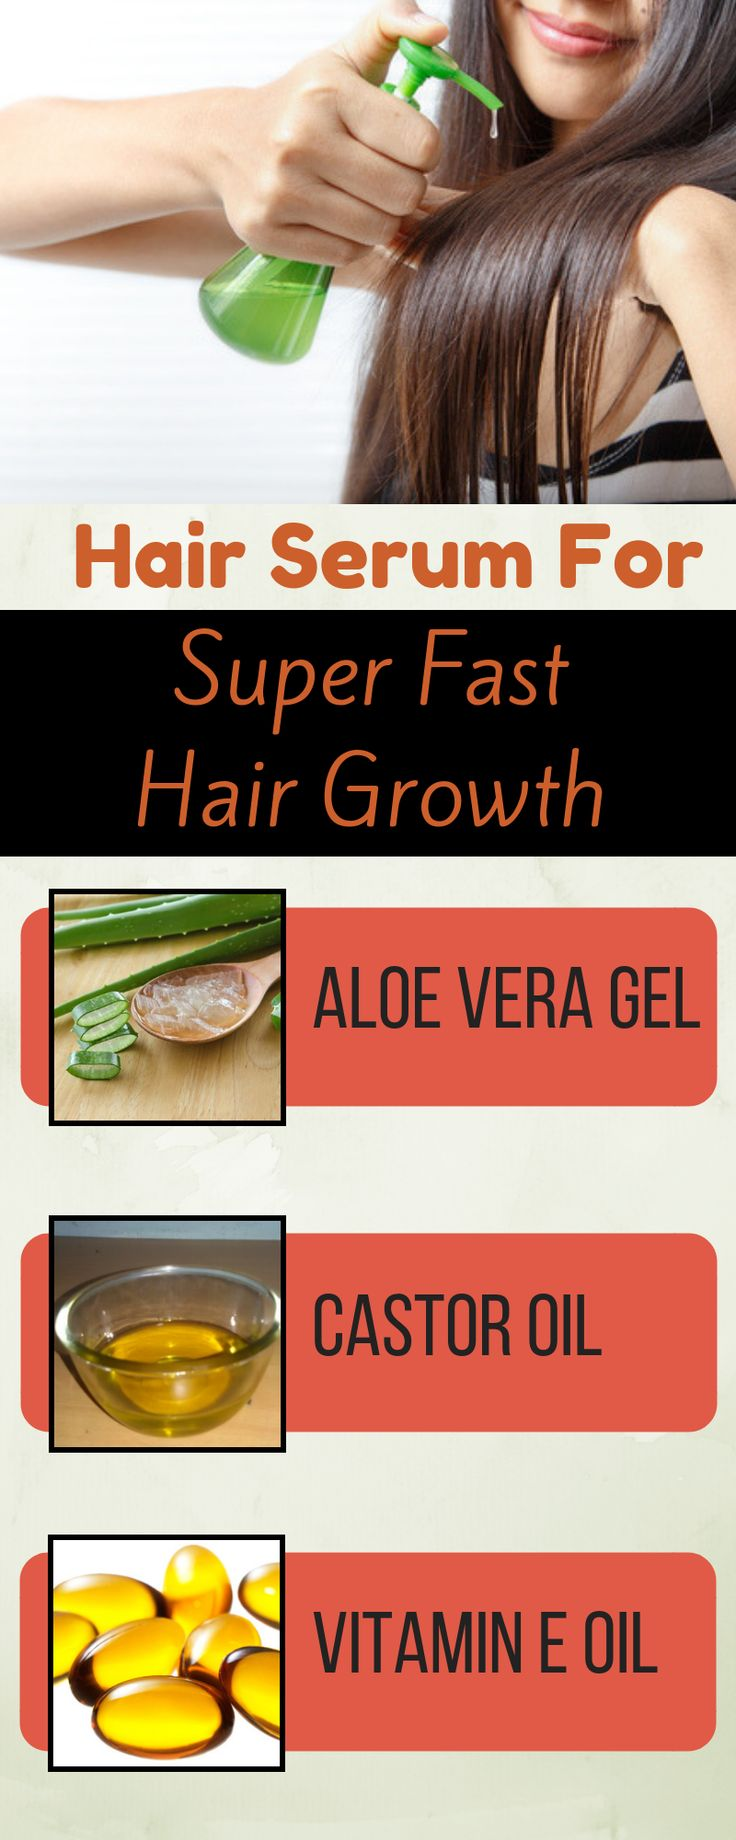 Apply this serum every day in evening and in simply 1 month your hair will develop continuous